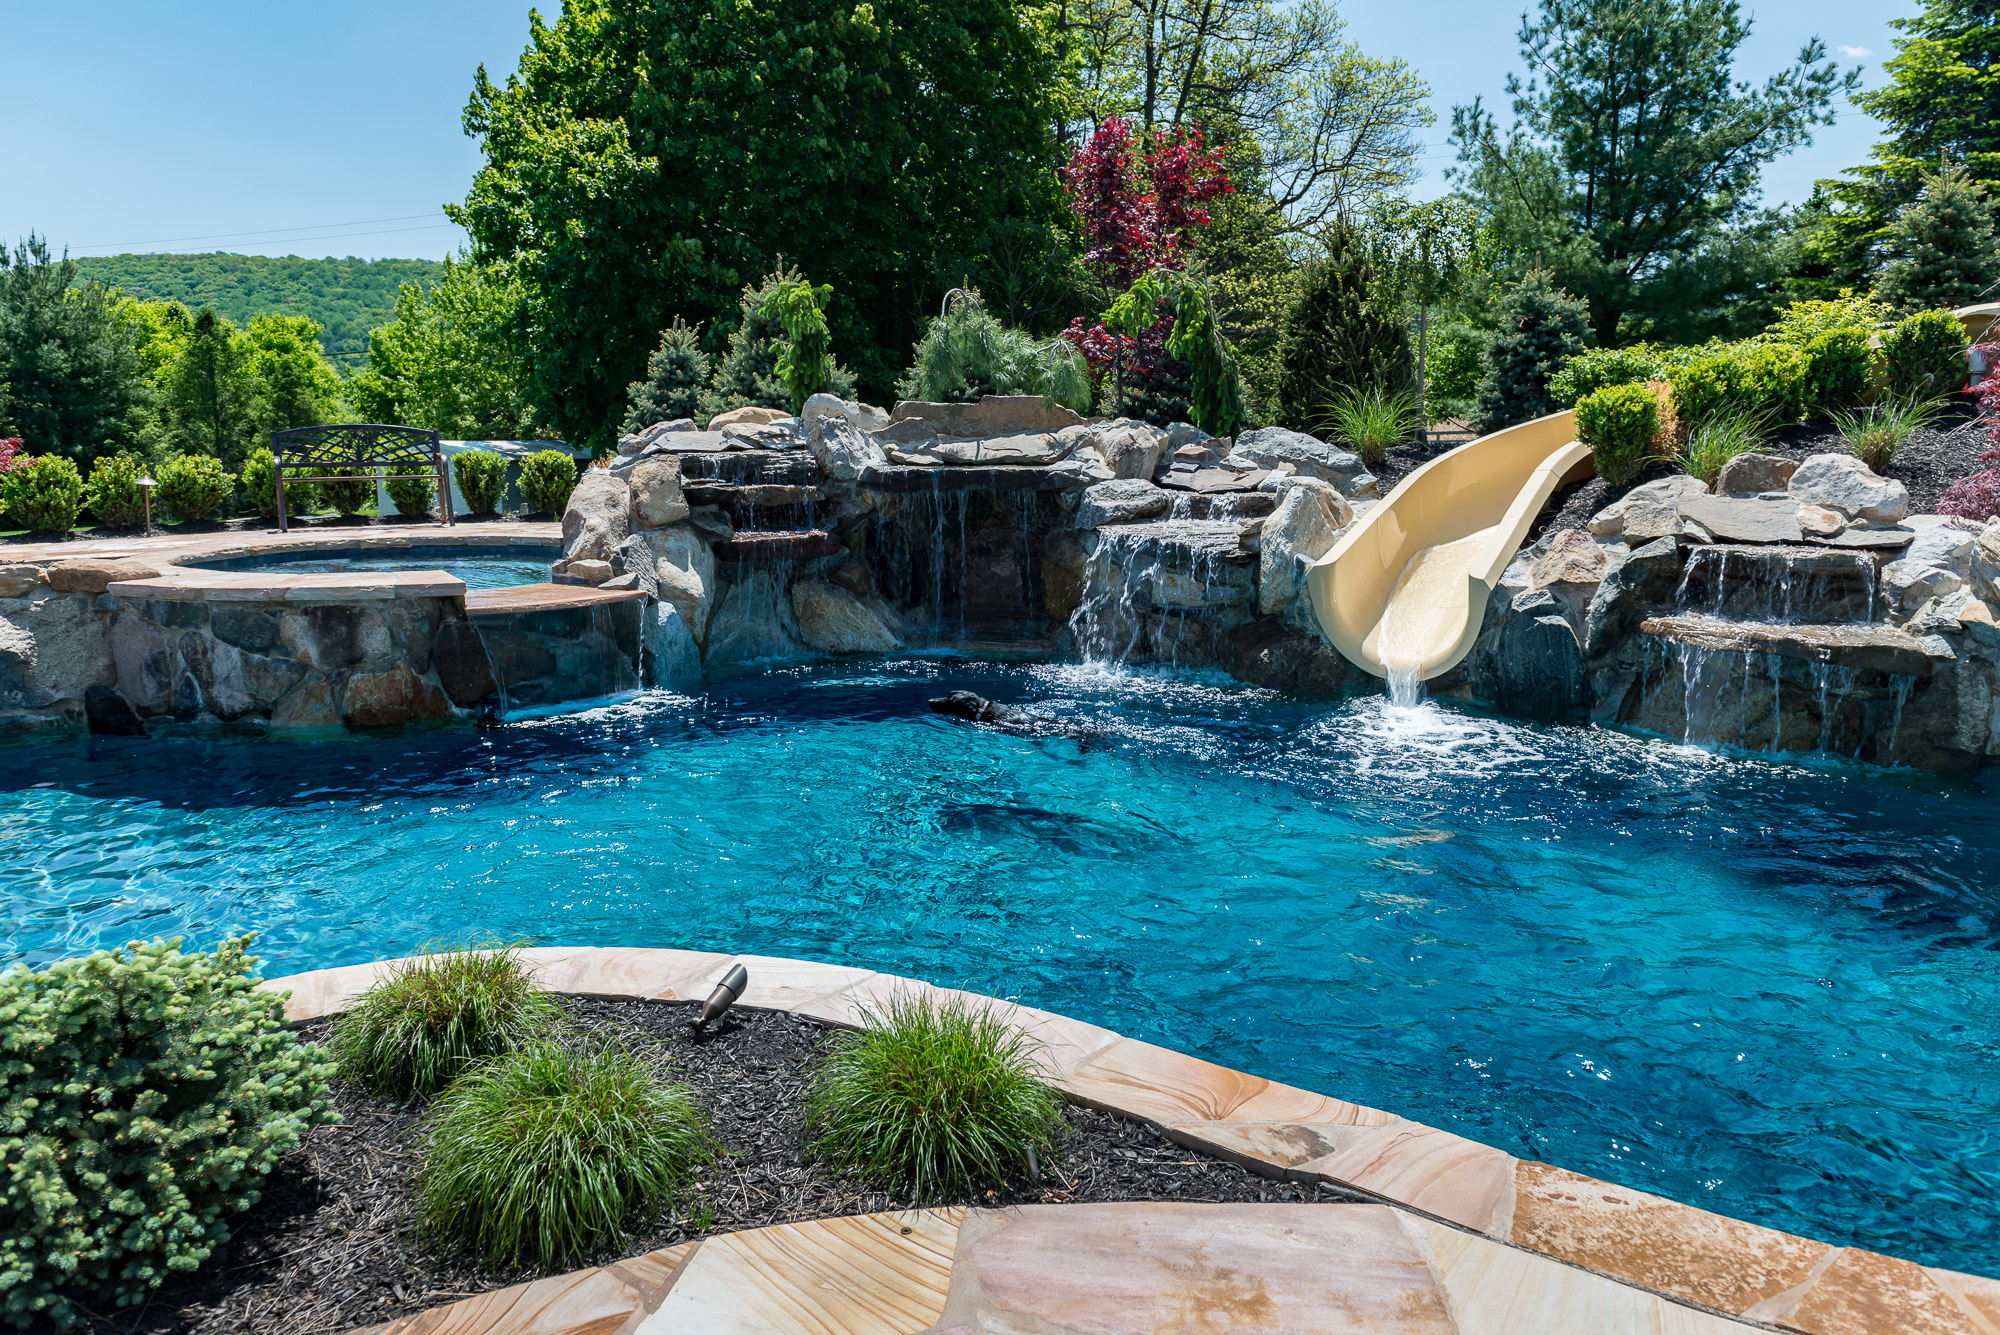 Bloomsbury nj custom inground swimming pool design for Custom swimming pool designs